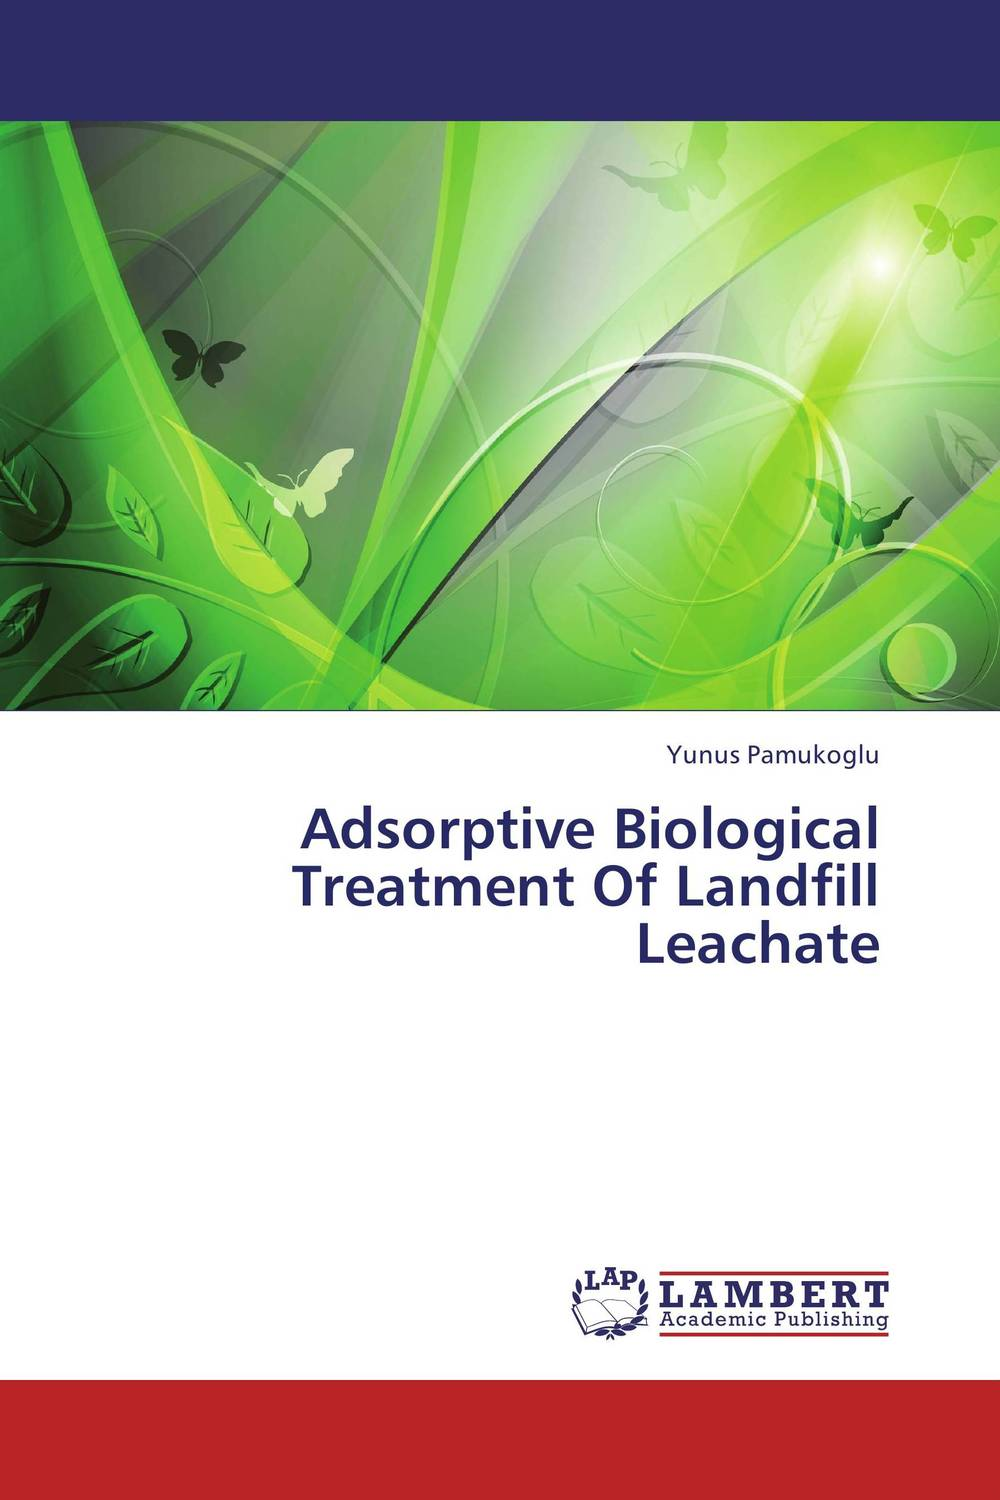 Adsorptive Biological Treatment Of Landfill Leachate solitons in dna and biological implications